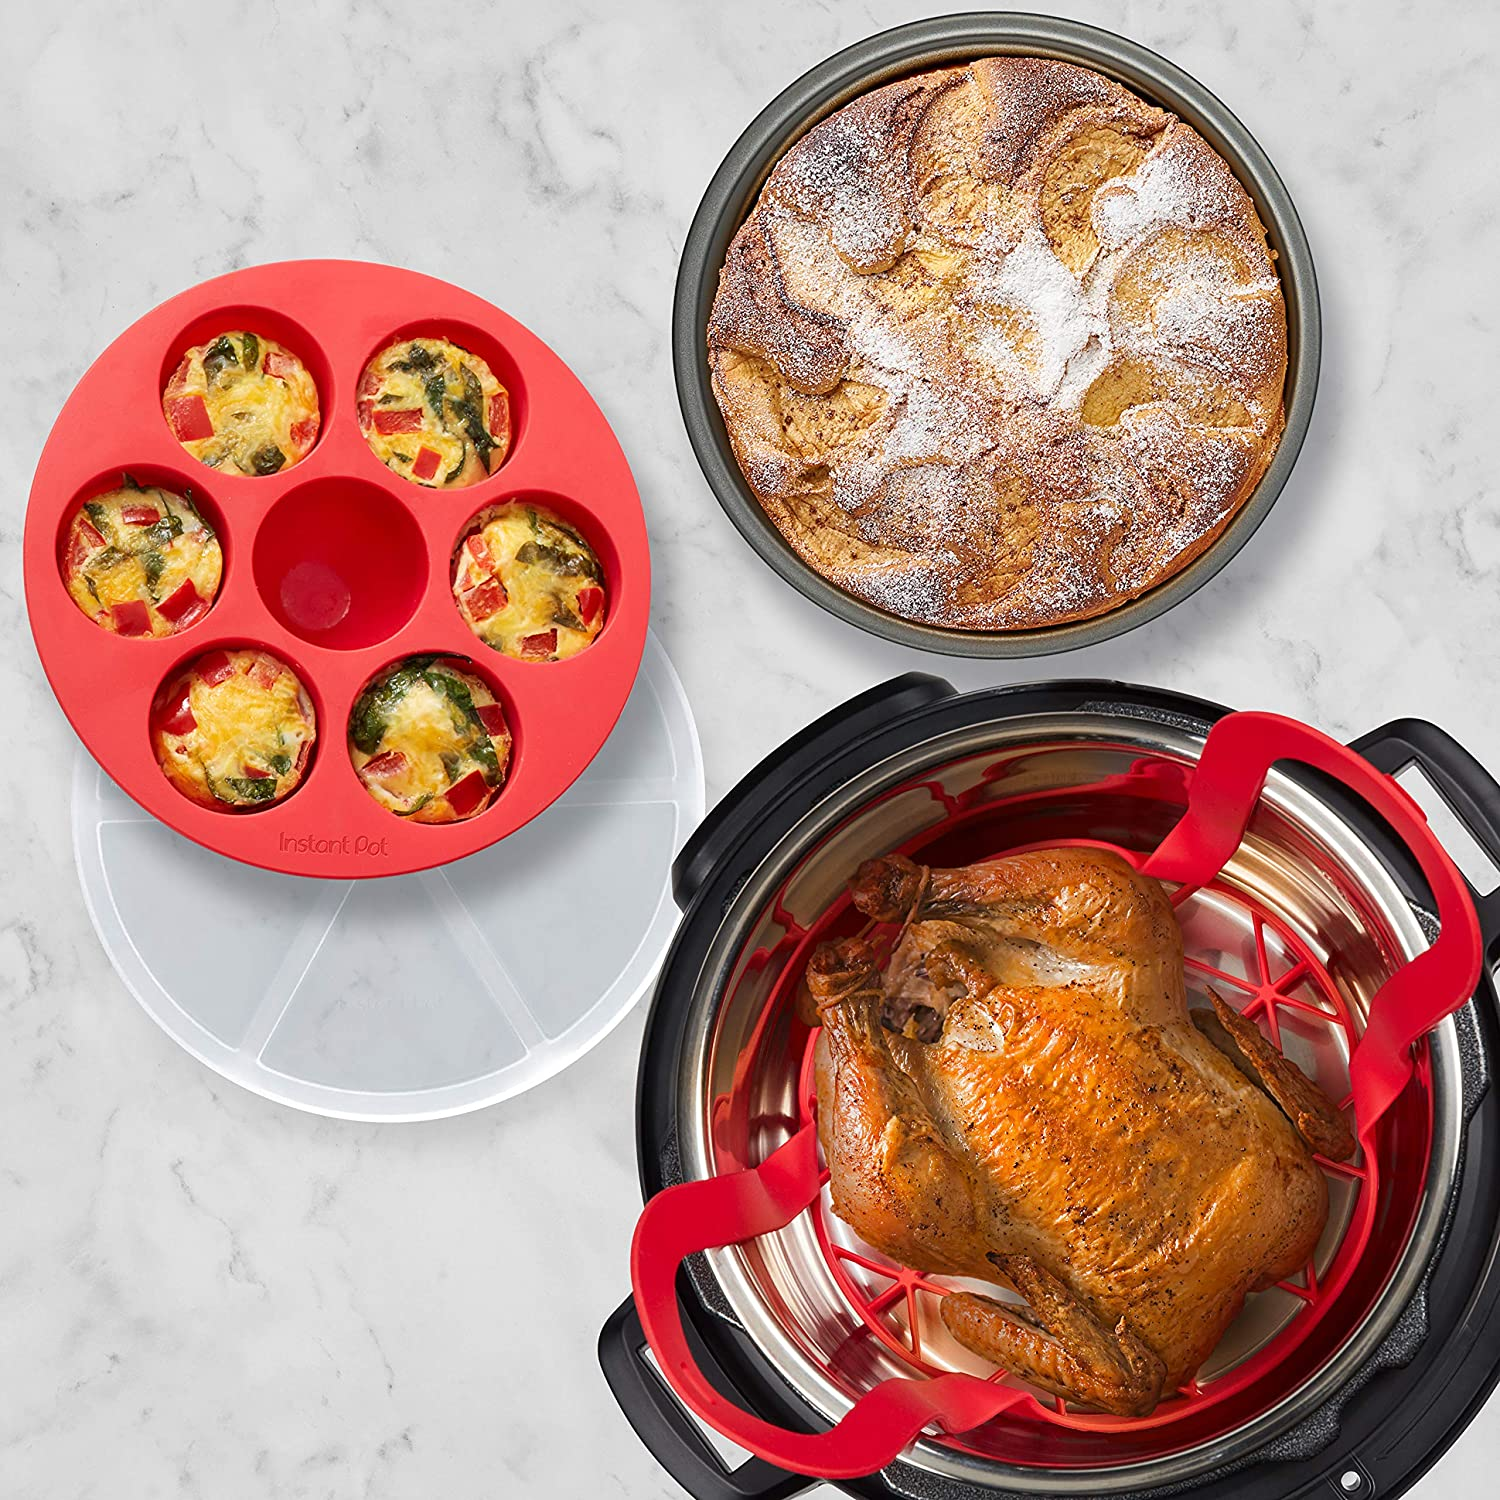 Instant Pot Official Cooking and Baking Set, Fits 6QT/8QT Electric Pressure Cooker and Duo Crisp Air Fryer Lid Combo, 5-Piece, Multicolored